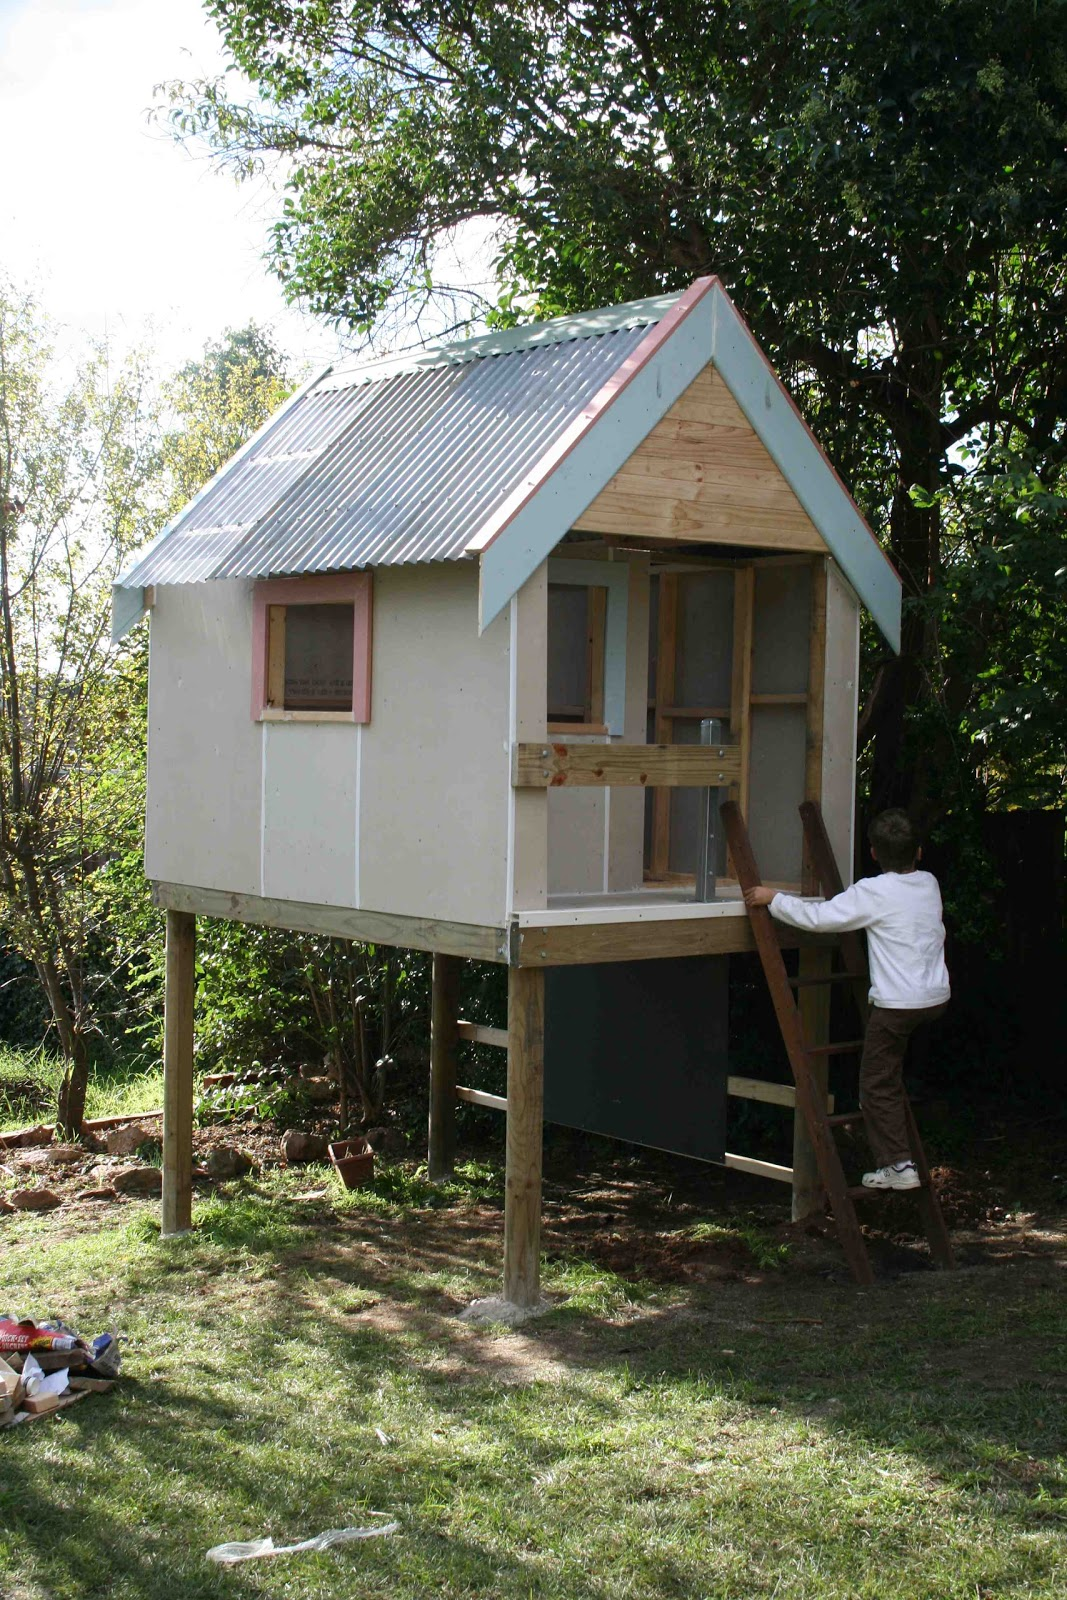 The Cubby House: A Site For Creative Play And Learning